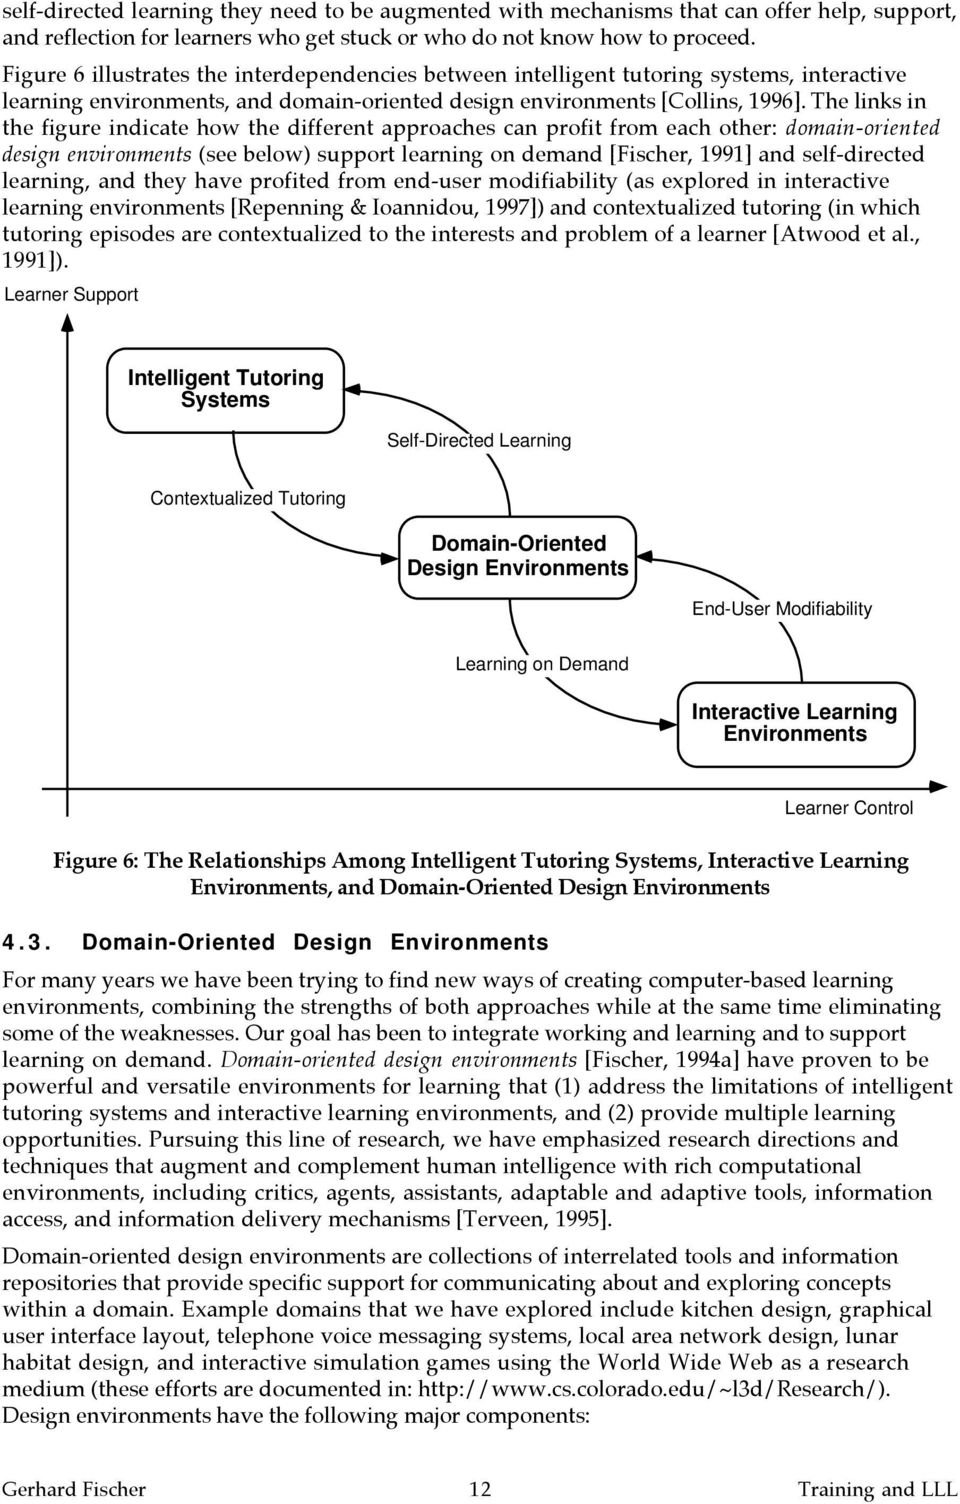 The links in the figure indicate how the different approaches can profit from each other: domain-oriented design environments (see below) support learning on demand [Fischer, 1991] and self-directed